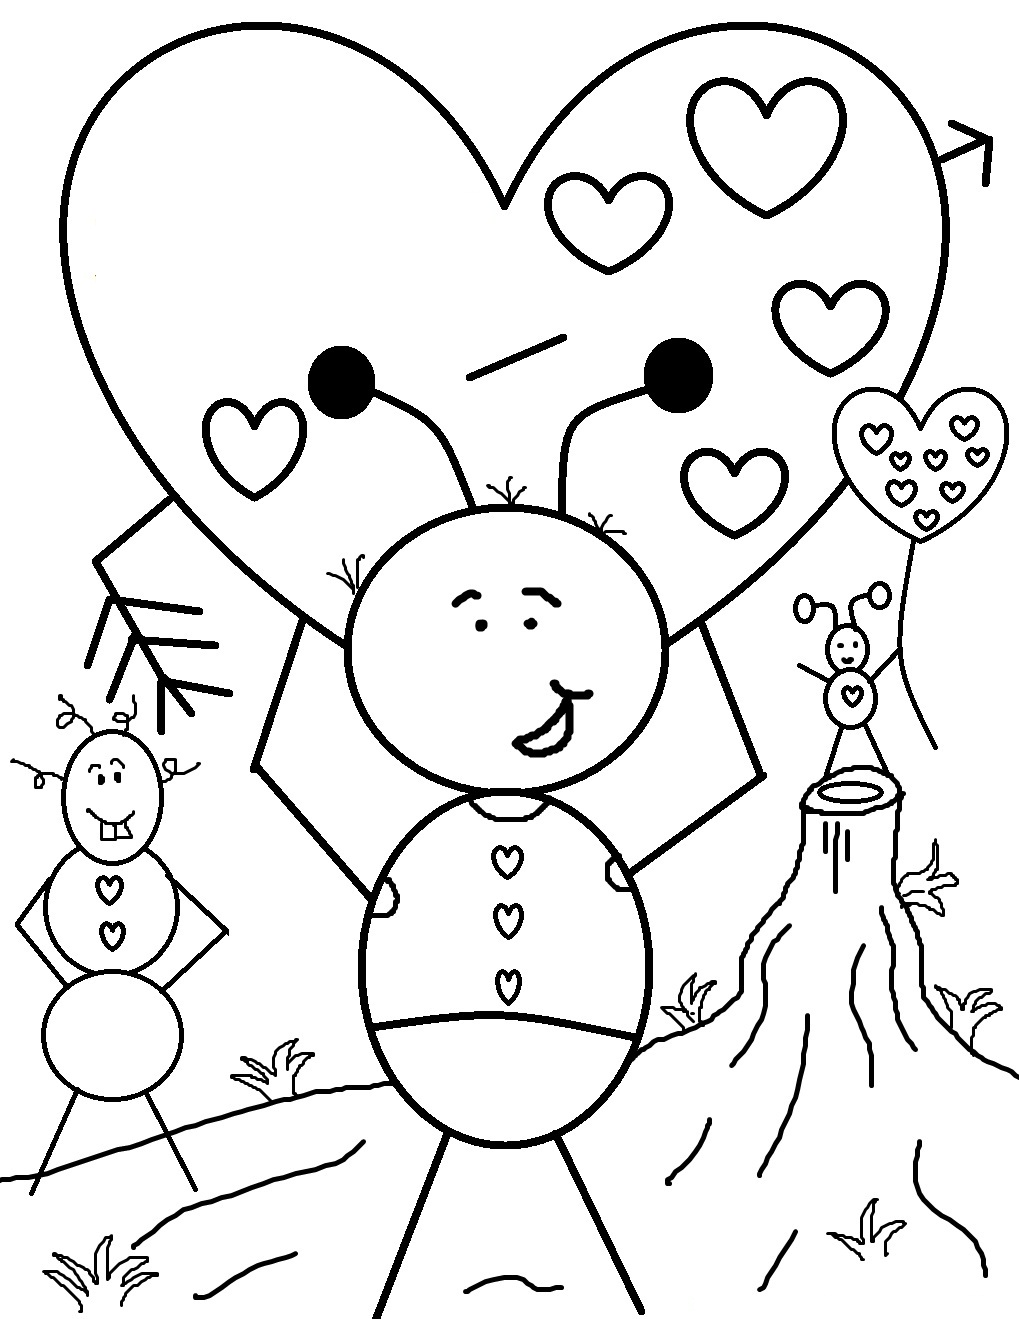 free valentines printables coloring pages - photo#24